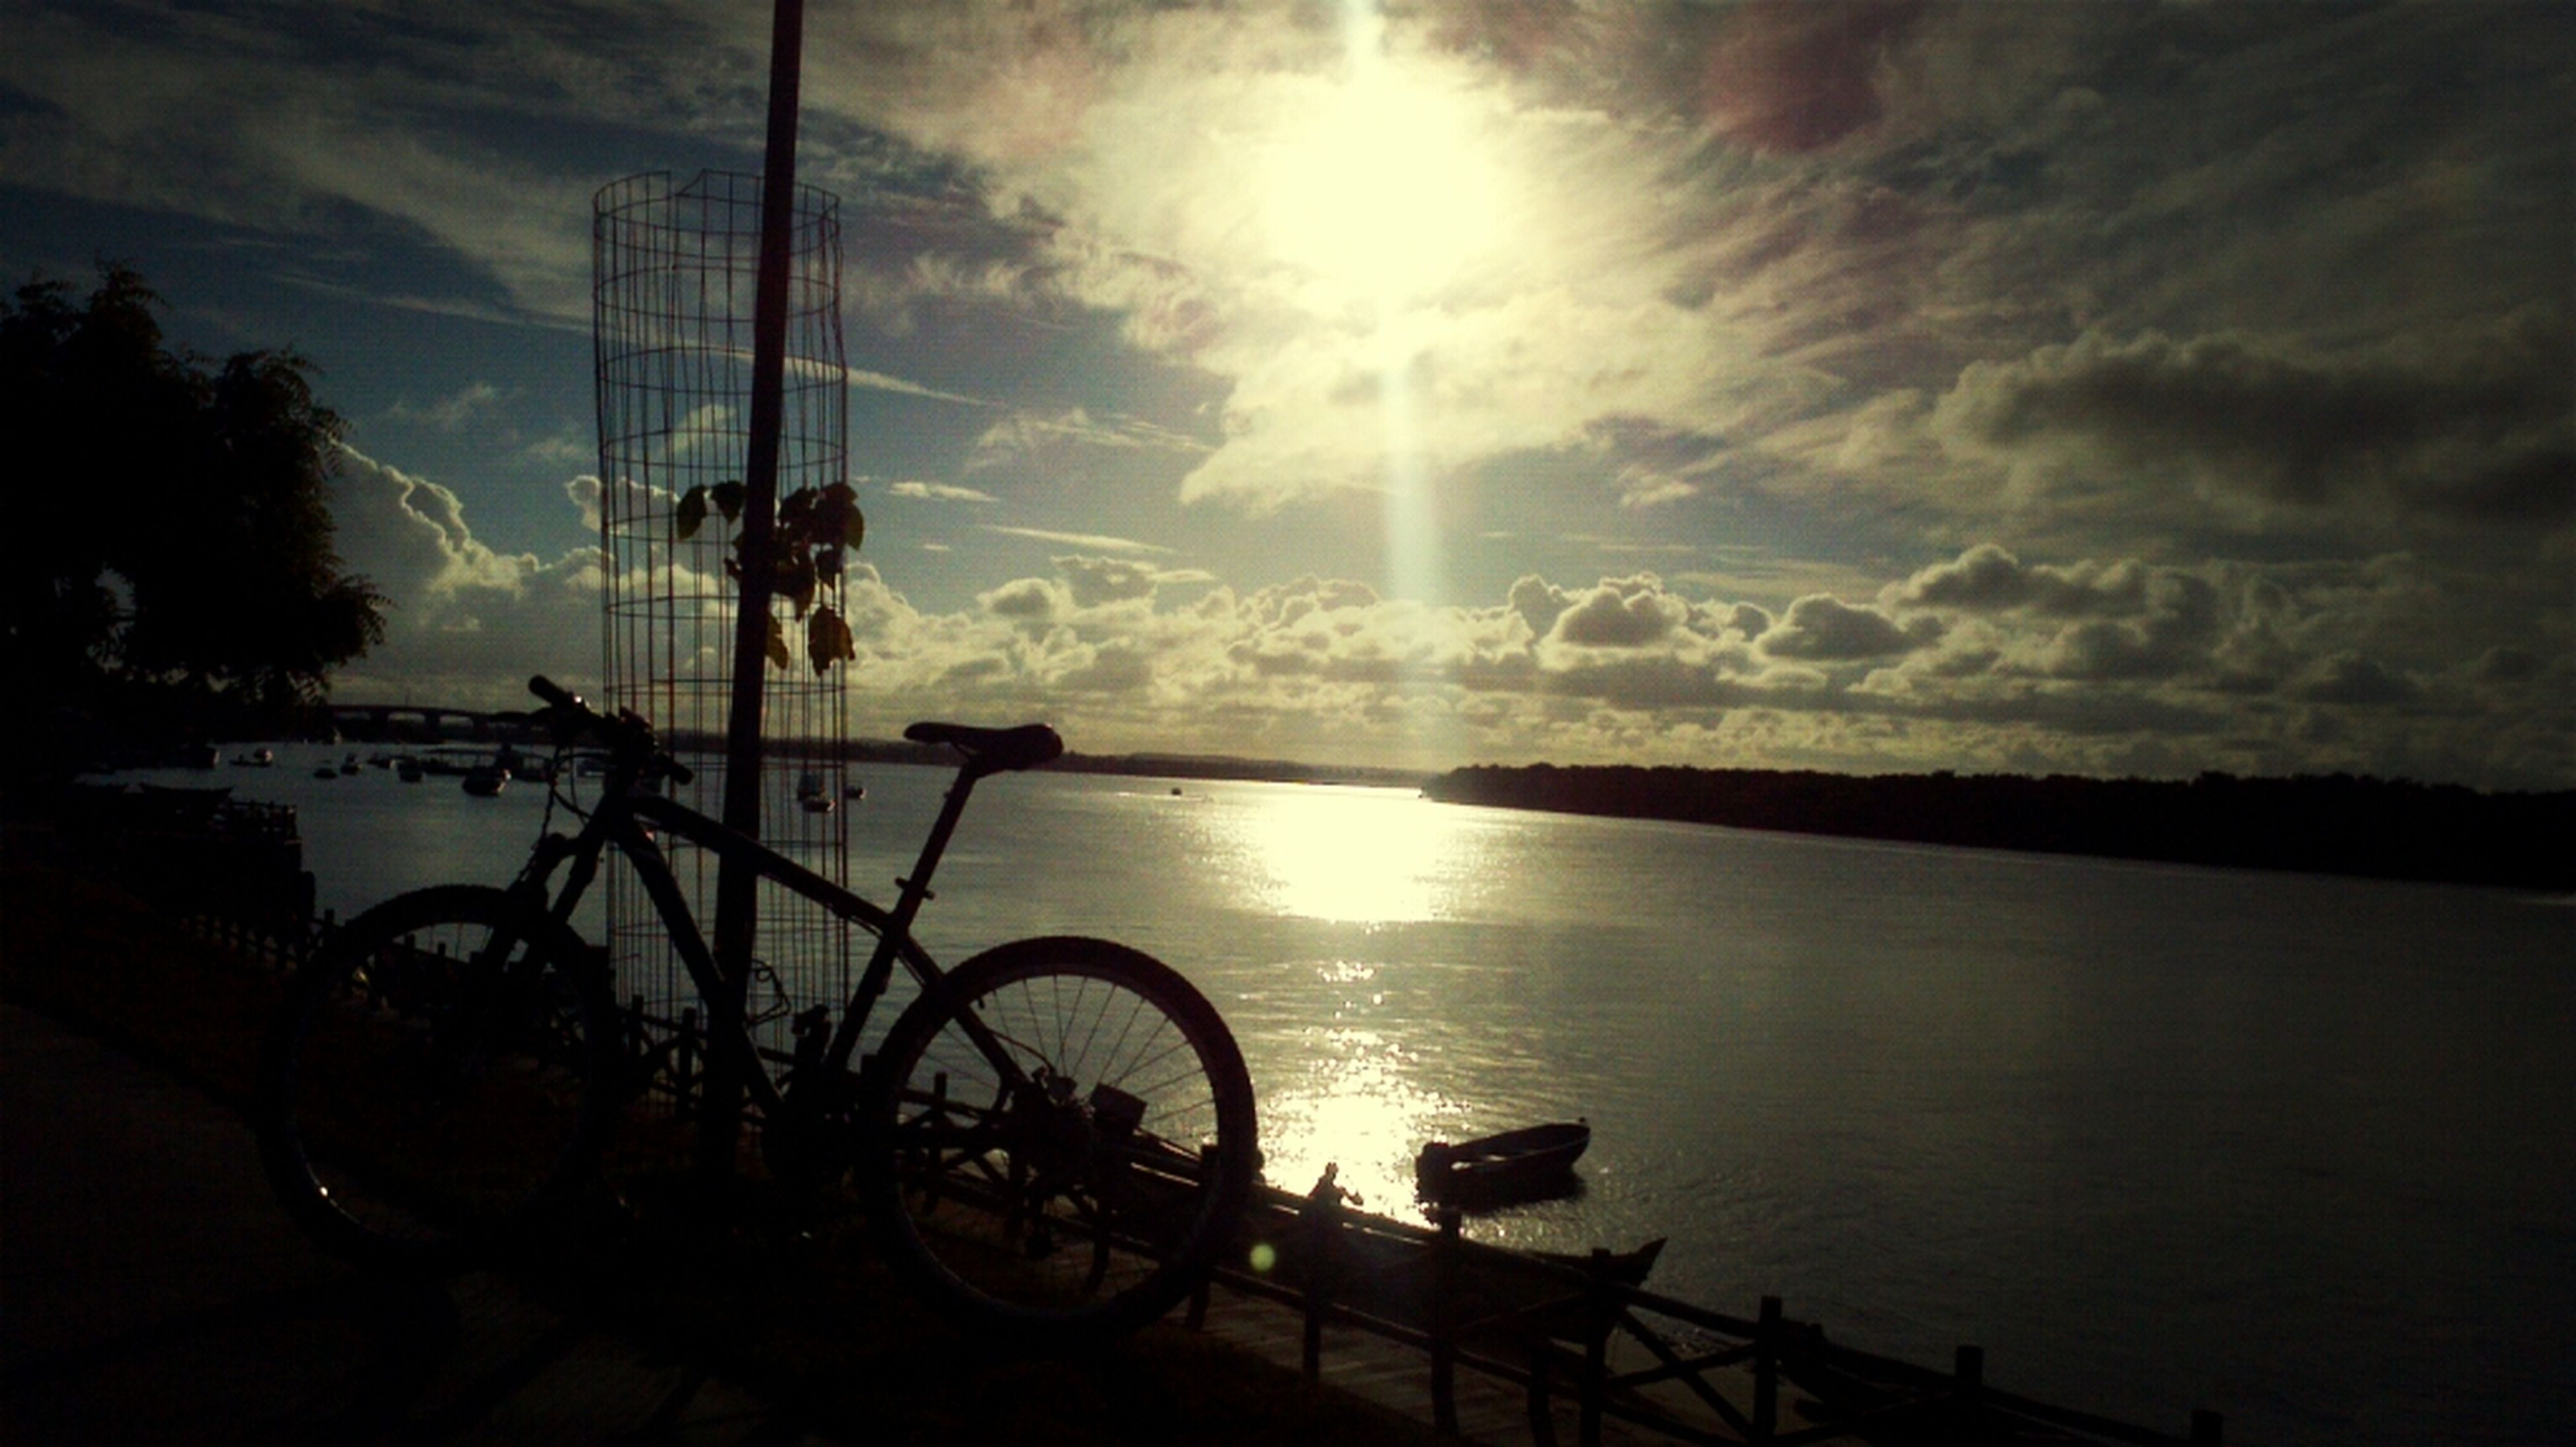 sun, bicycle, sky, transportation, mode of transport, water, cloud - sky, sunbeam, sunlight, scenics, tranquility, tranquil scene, reflection, beauty in nature, sea, silhouette, nature, land vehicle, sunset, stationary